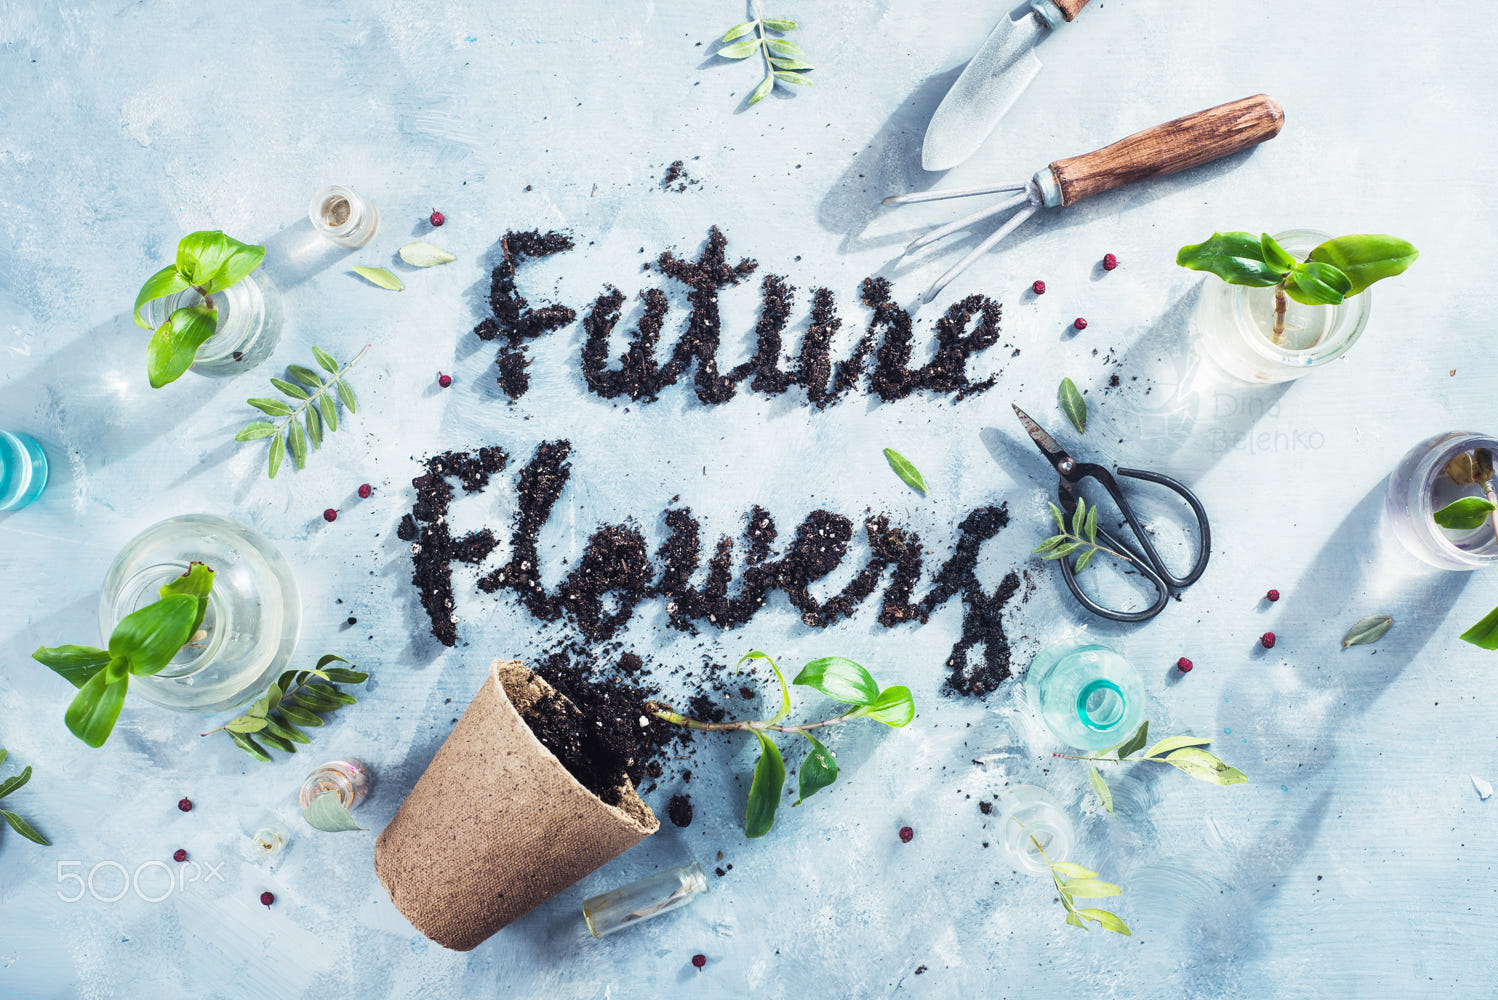 food art advertising idea photo manipulations future flowers by dina belenko